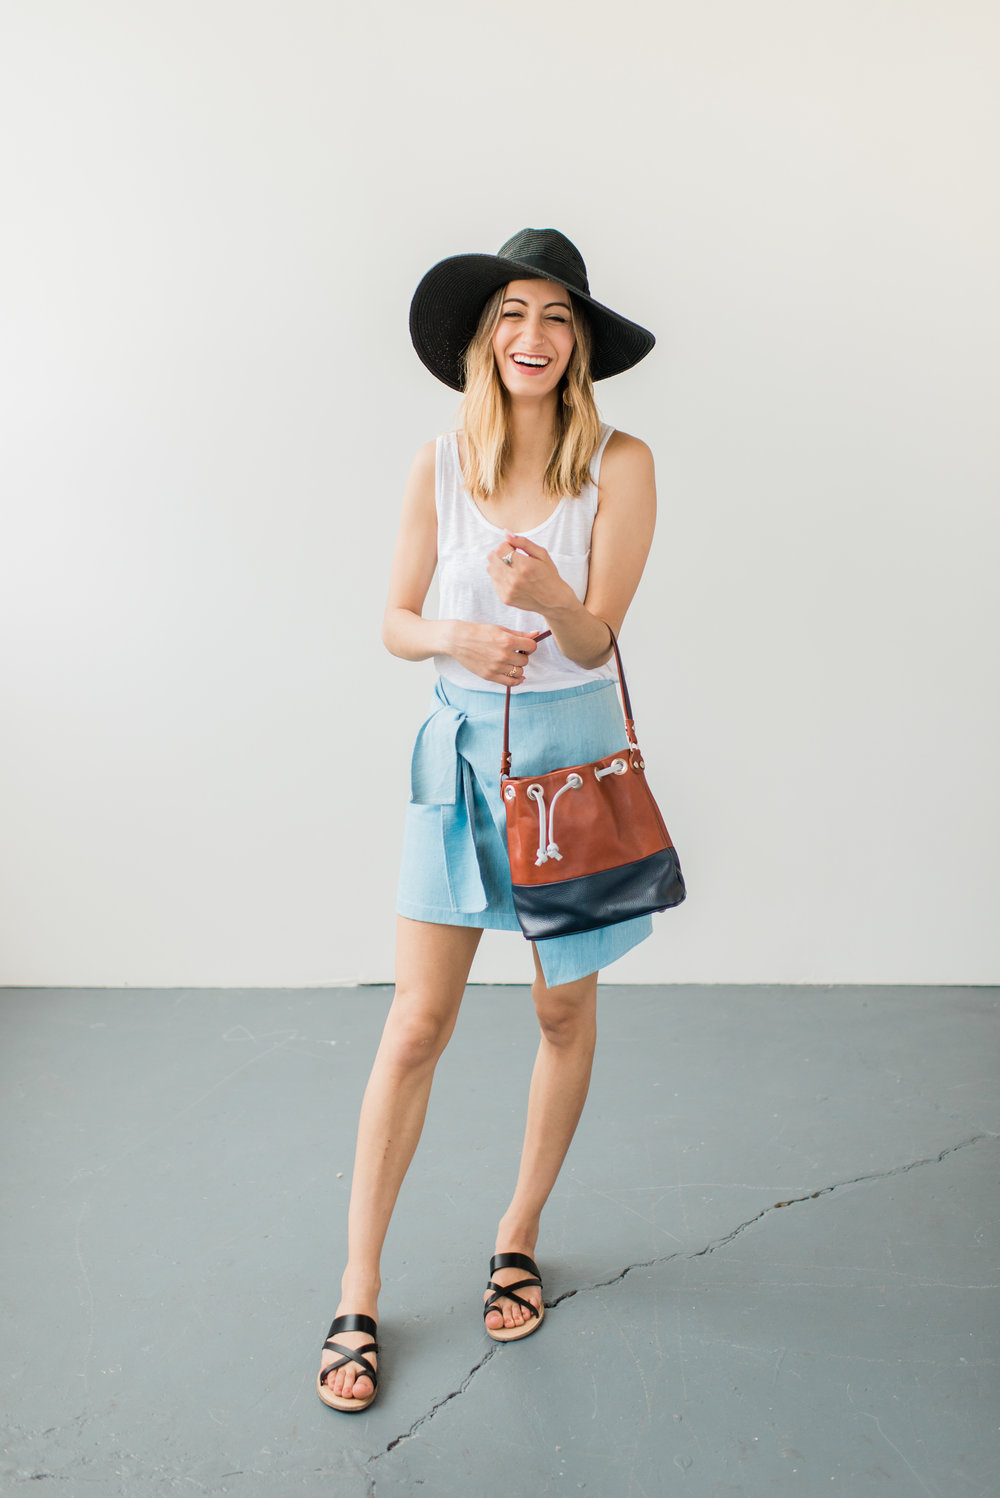 Brio Bucket Bag Mini, Laudi Vidni